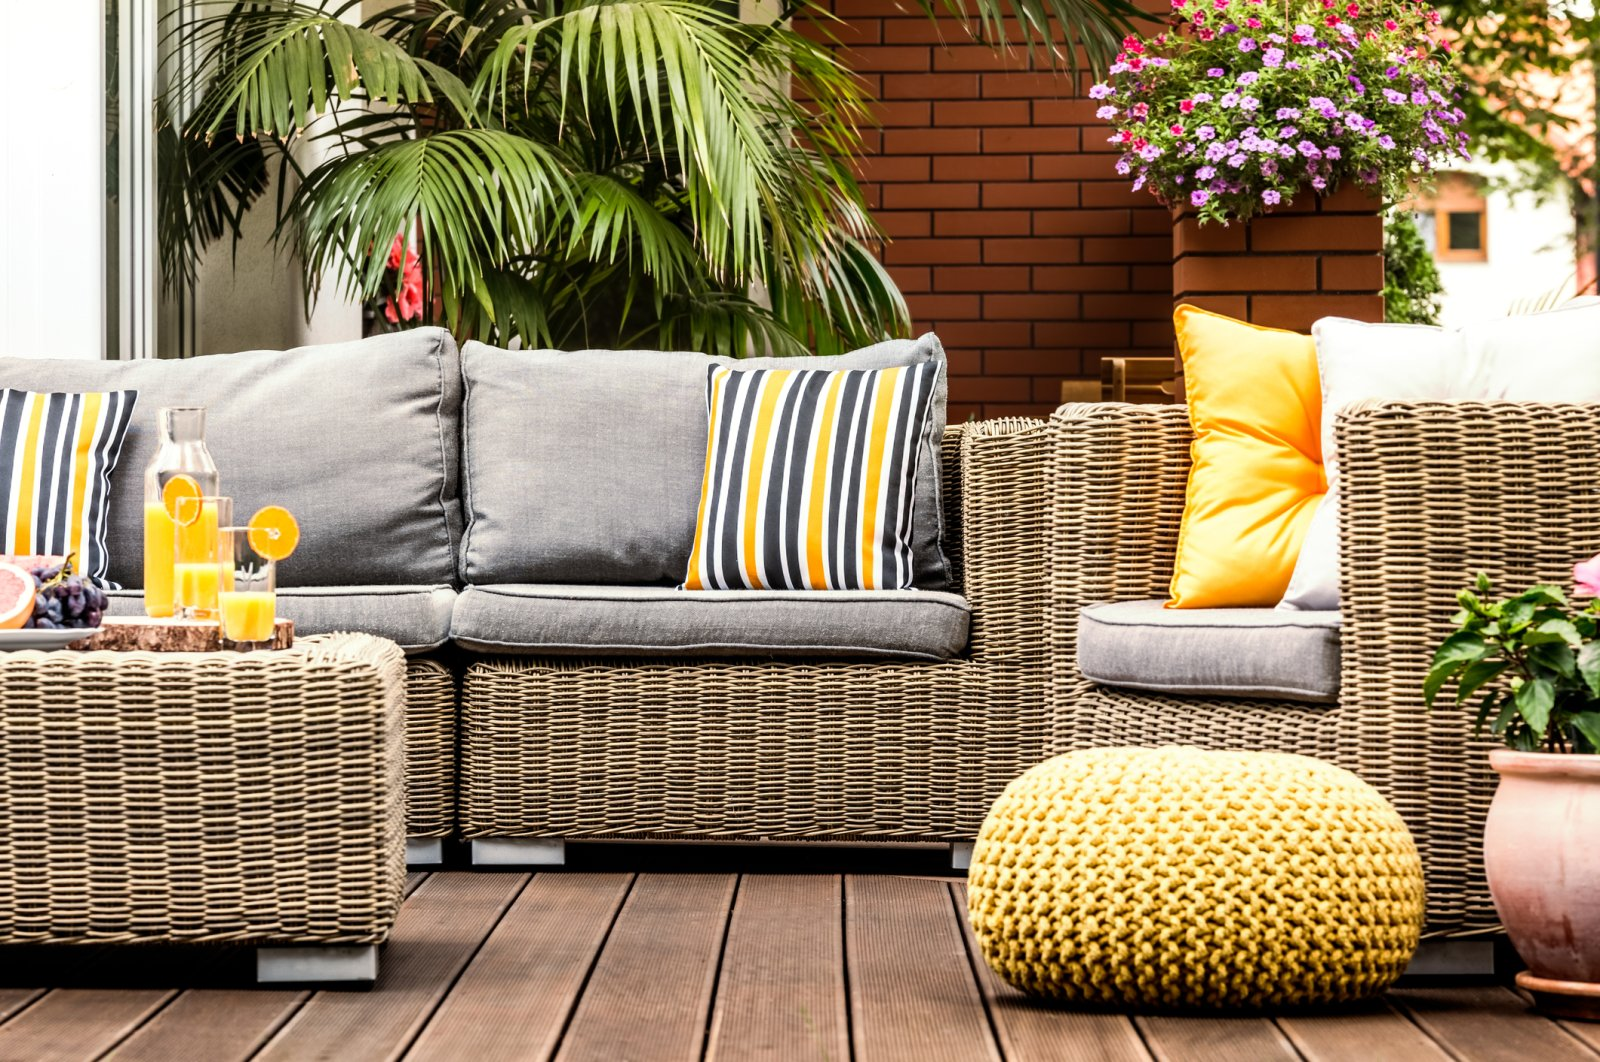 Redecorating your outdoor living spaces can transform your whole mood. (iStock Photo)